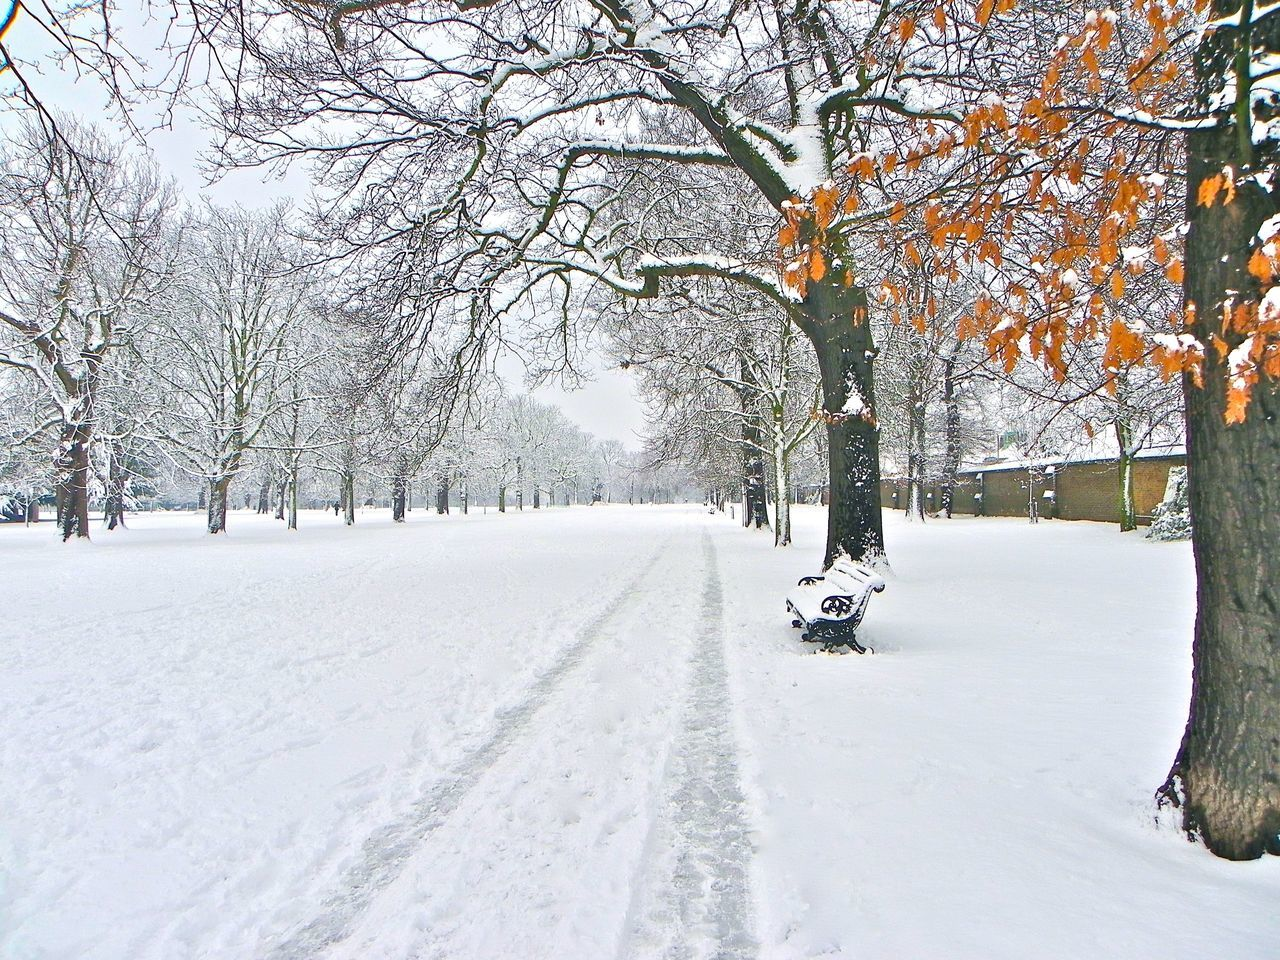 Greenwich Park in the snow Beauty In Nature Cold Temperature Day Greenwich Park London Nature No People Outdoors Scenic Landscapes Snow Snow ❄ Snowing Tree Trees Winter